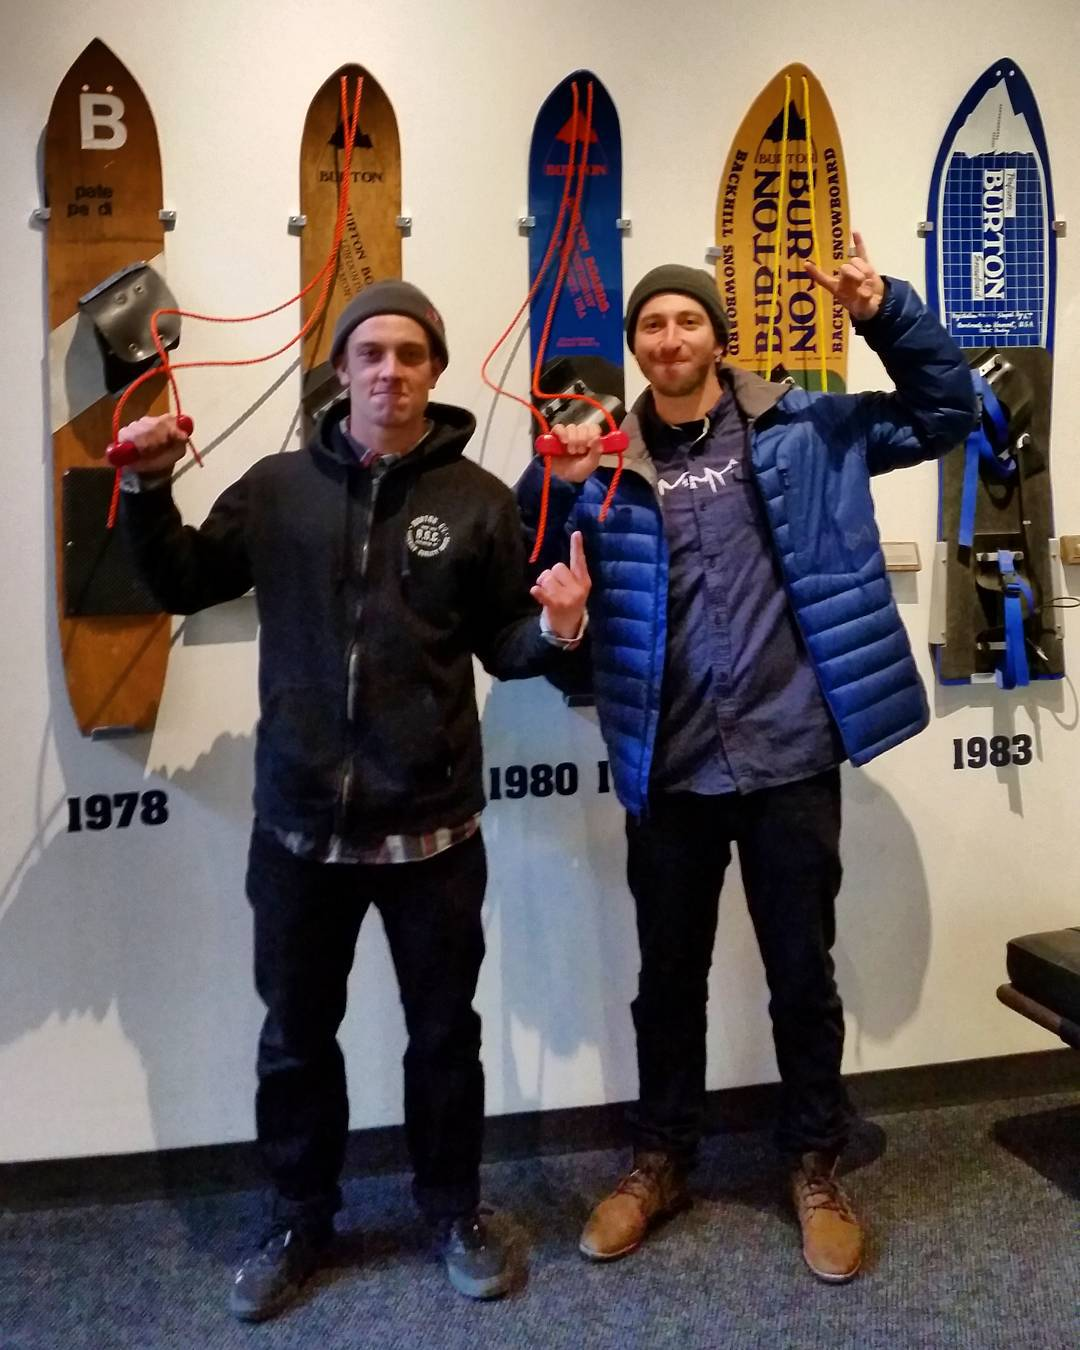 We have arrived at Burton HQ in Burlington, Vt., to check out the making of the board that @Ben_Ferguson will ride at #XGames Aspen!  Check out @JackMitrani's Snapchat takeover